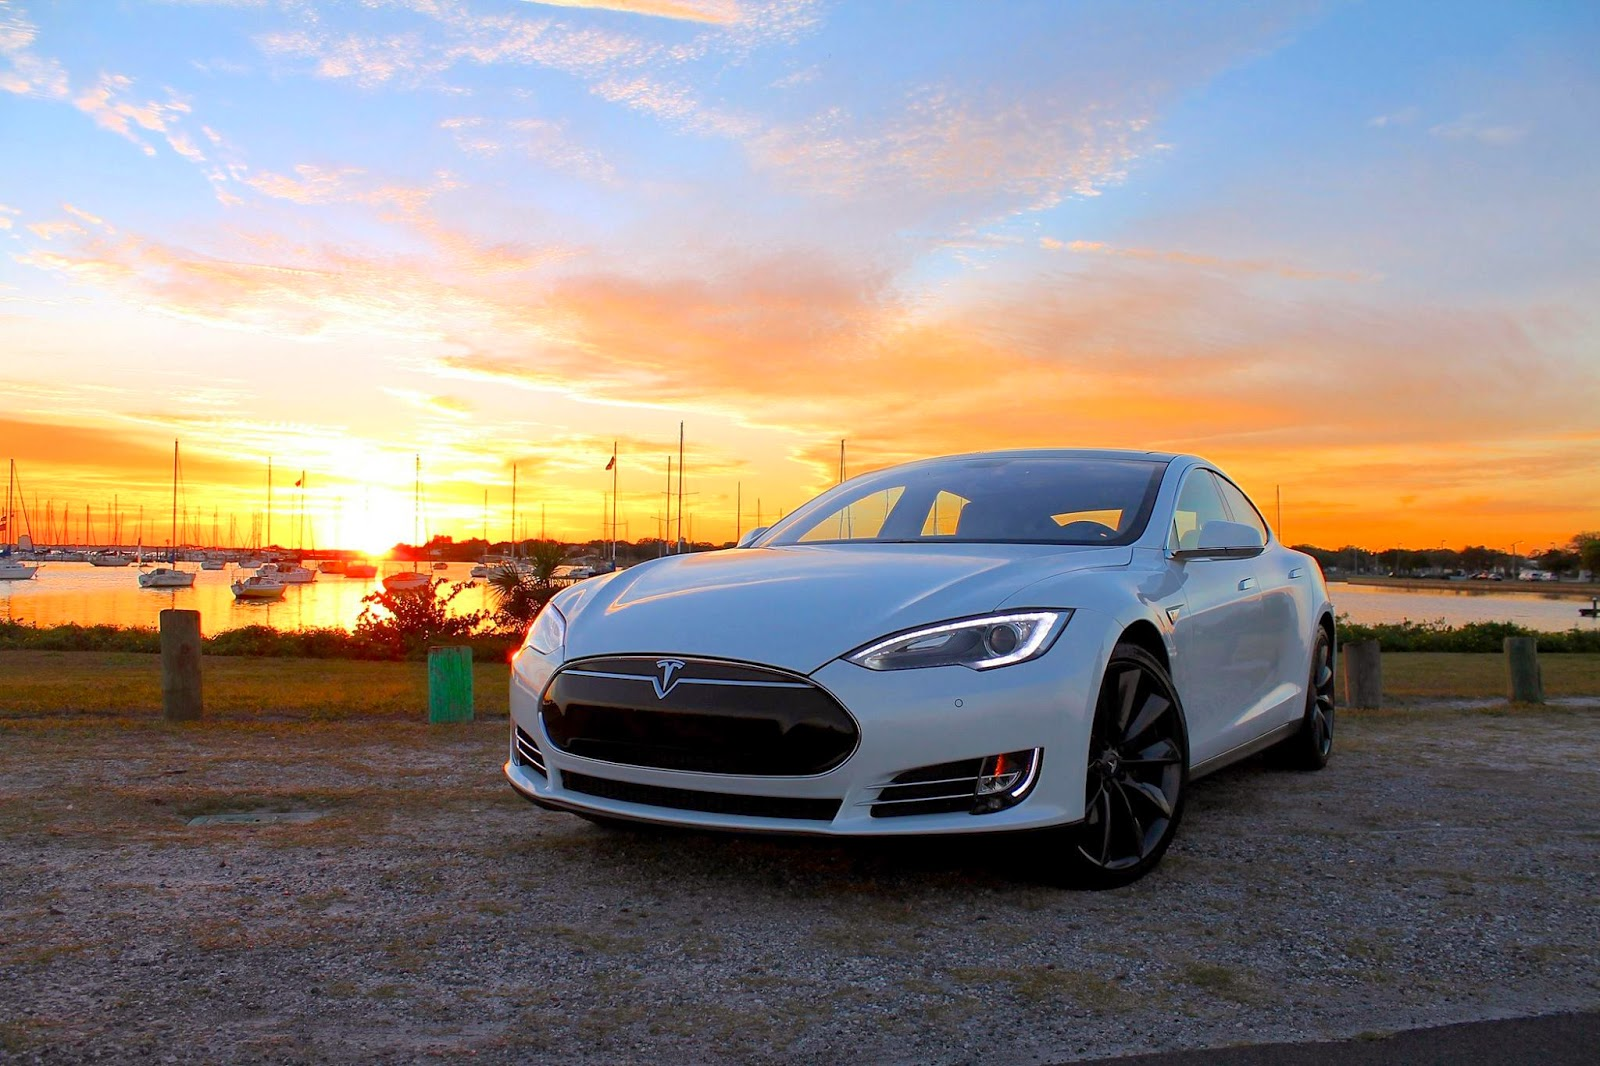 autos am ricaines blog tesla model s une nouvelle protection pour la batterie. Black Bedroom Furniture Sets. Home Design Ideas